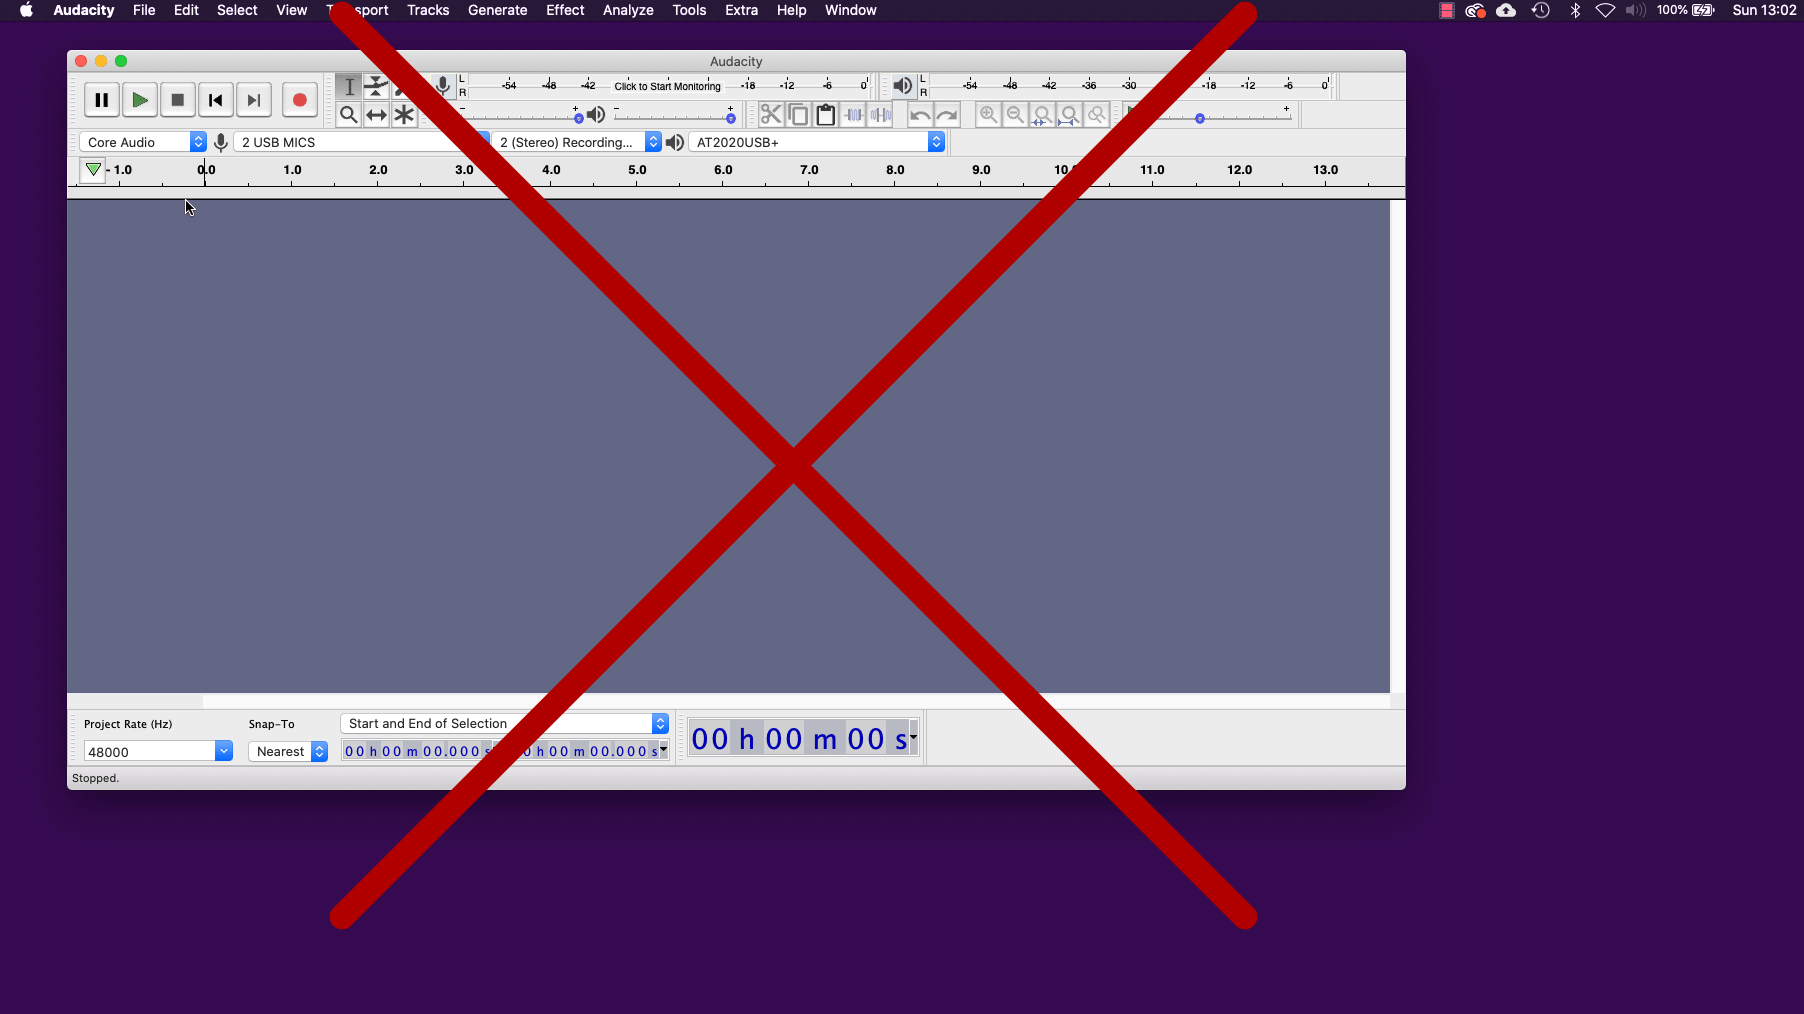 Audacity screenshot - crossed out